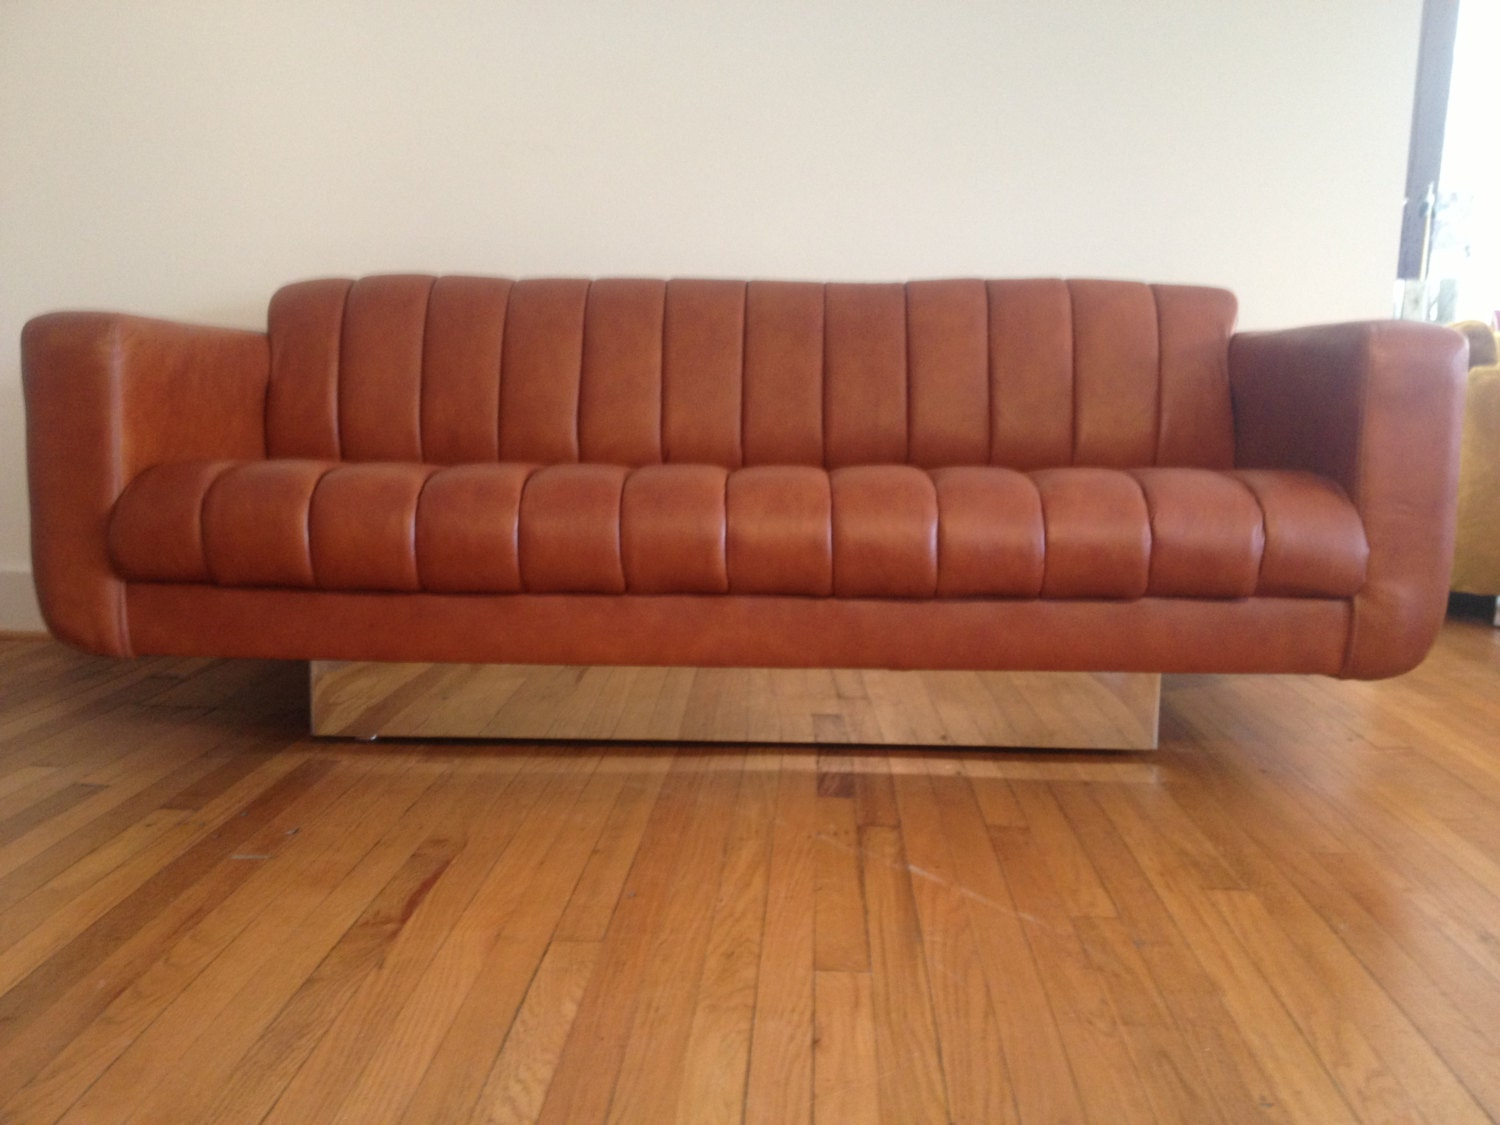 Mid century modern leather and chrome sofa by davis furniture for Mid century modern leather sofa